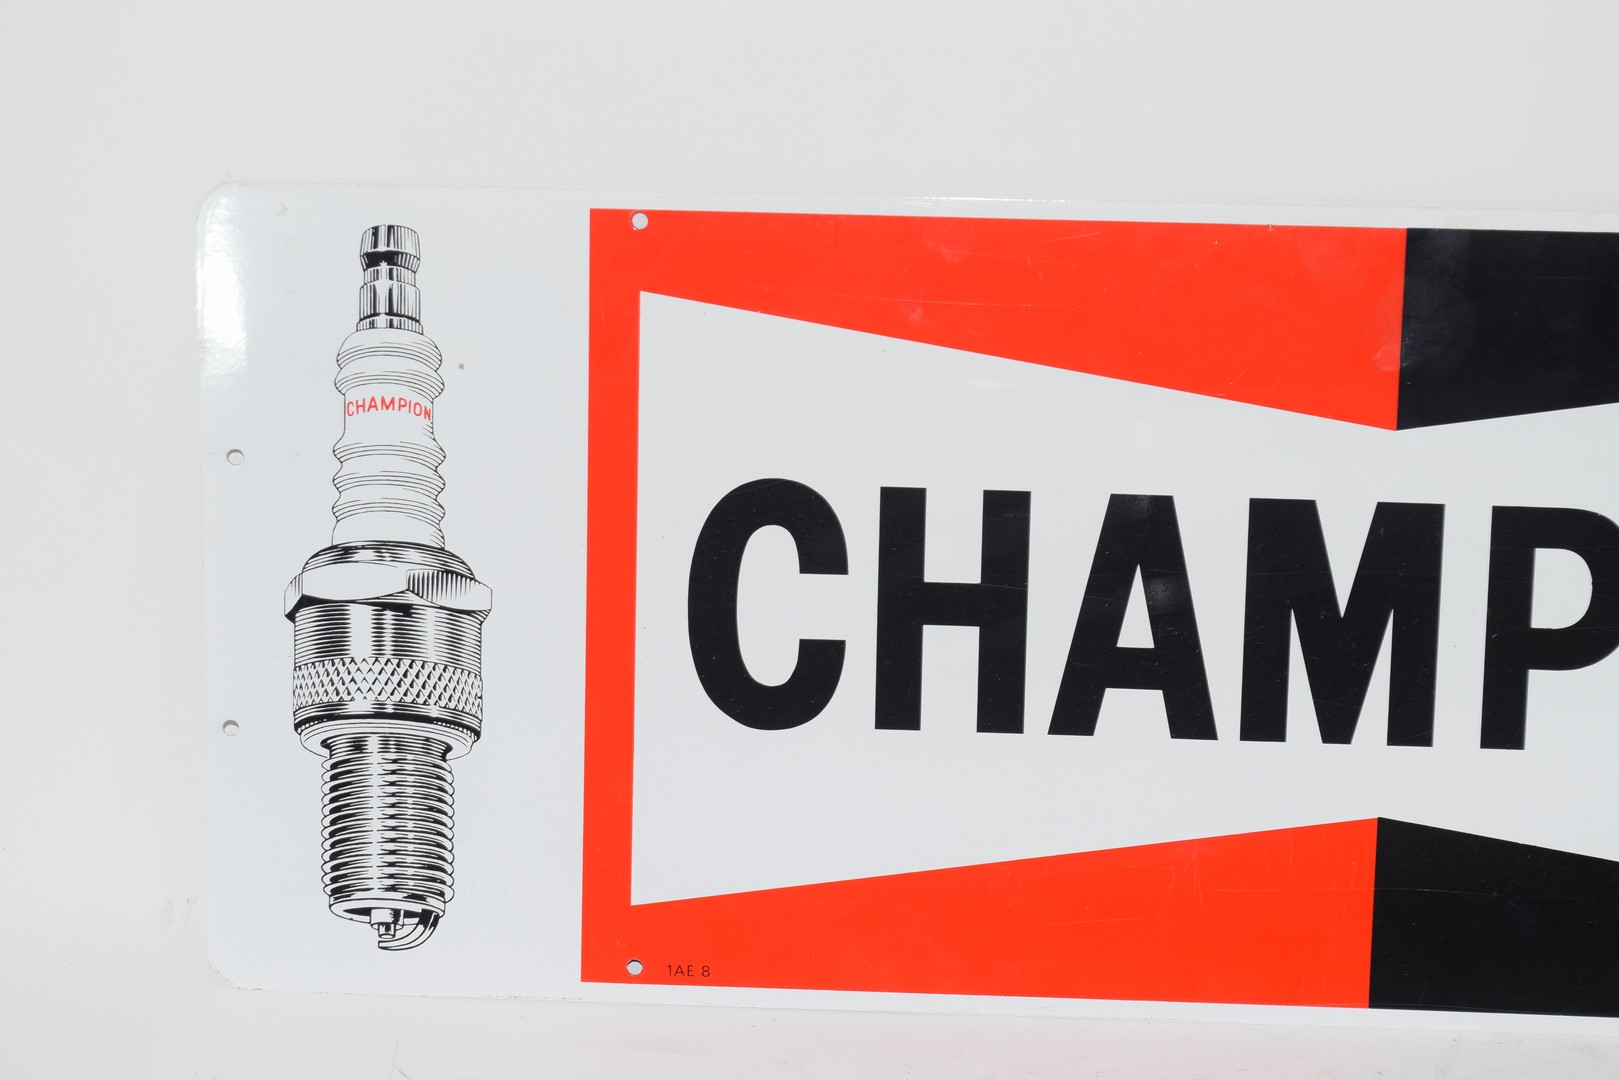 Two metal signs advertising Champion spark plugs - Image 3 of 5